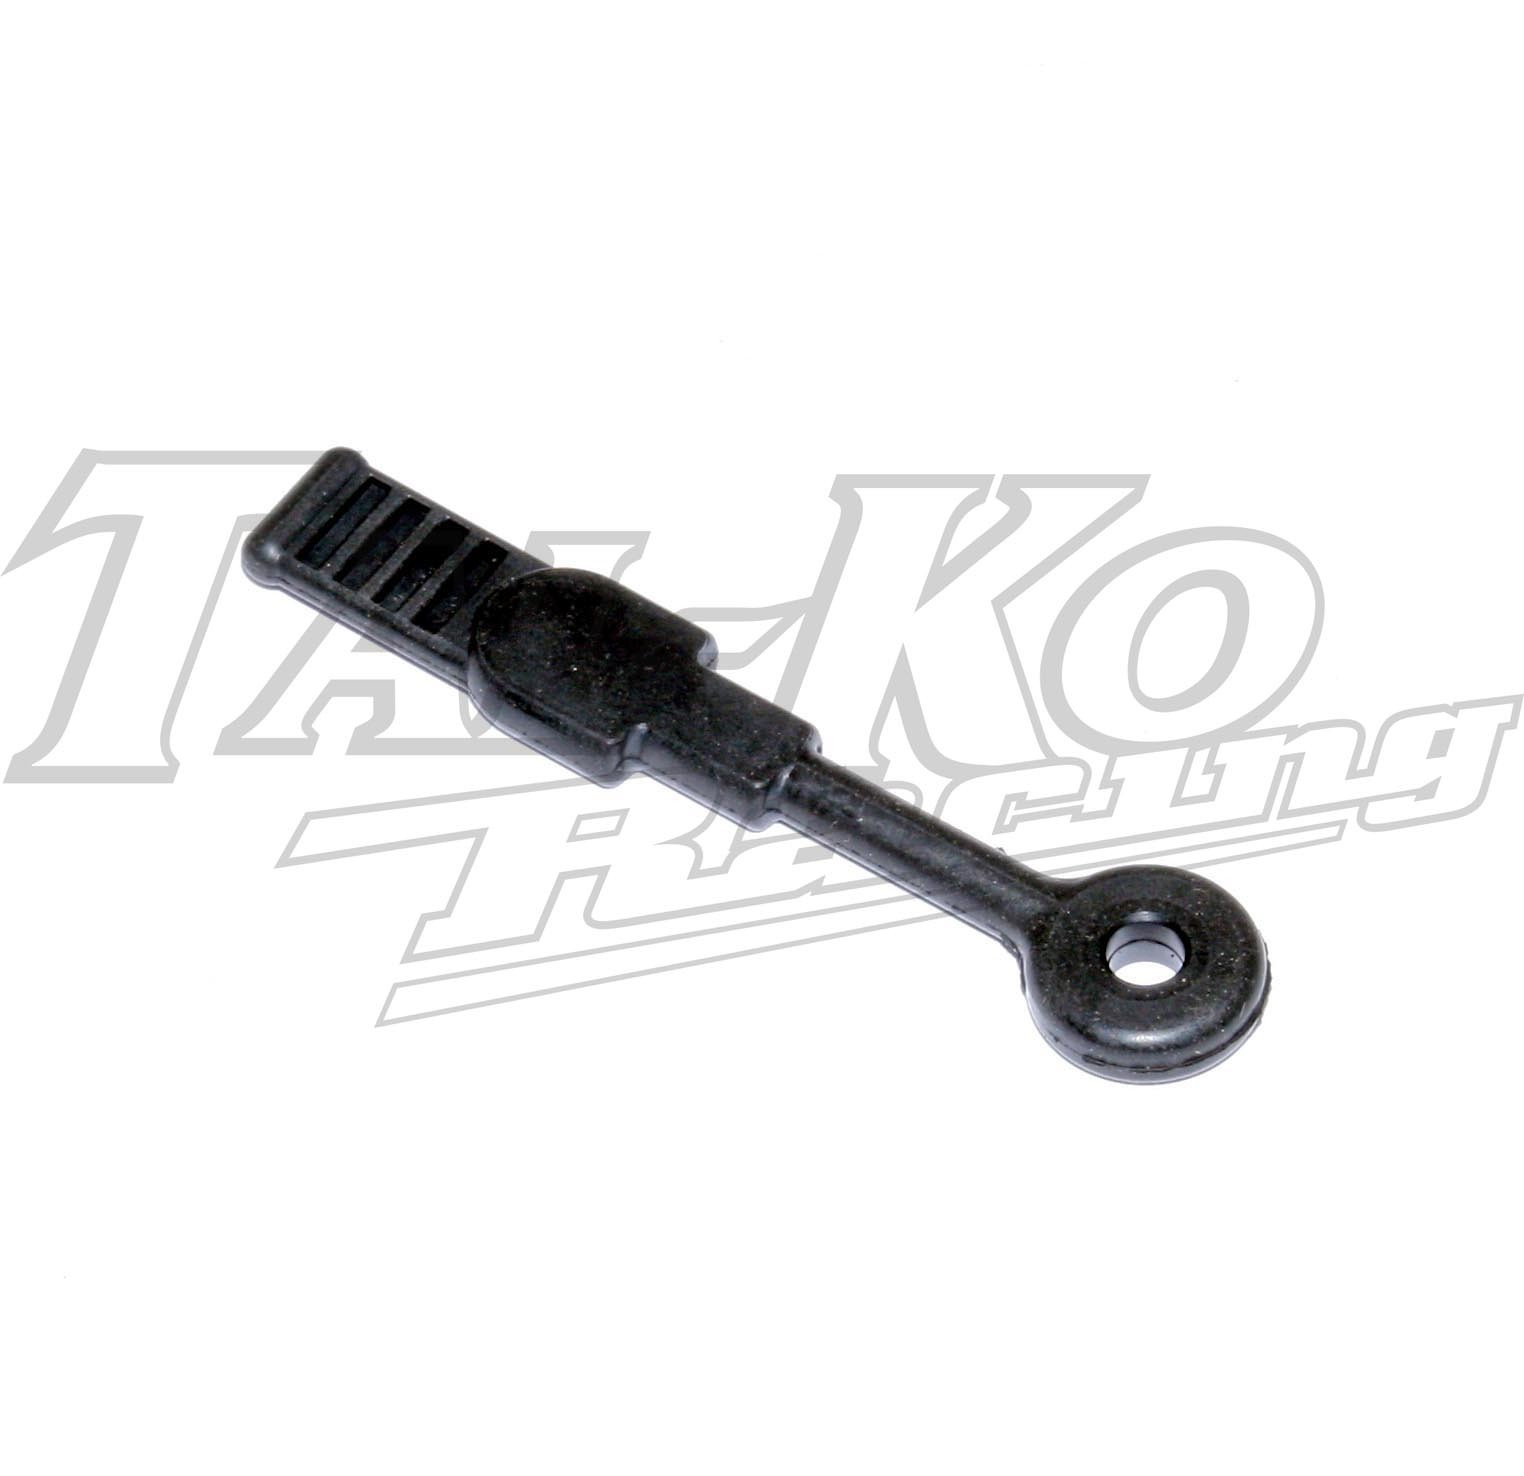 R/R CHAIN GUARD RUBBER TOGGLE